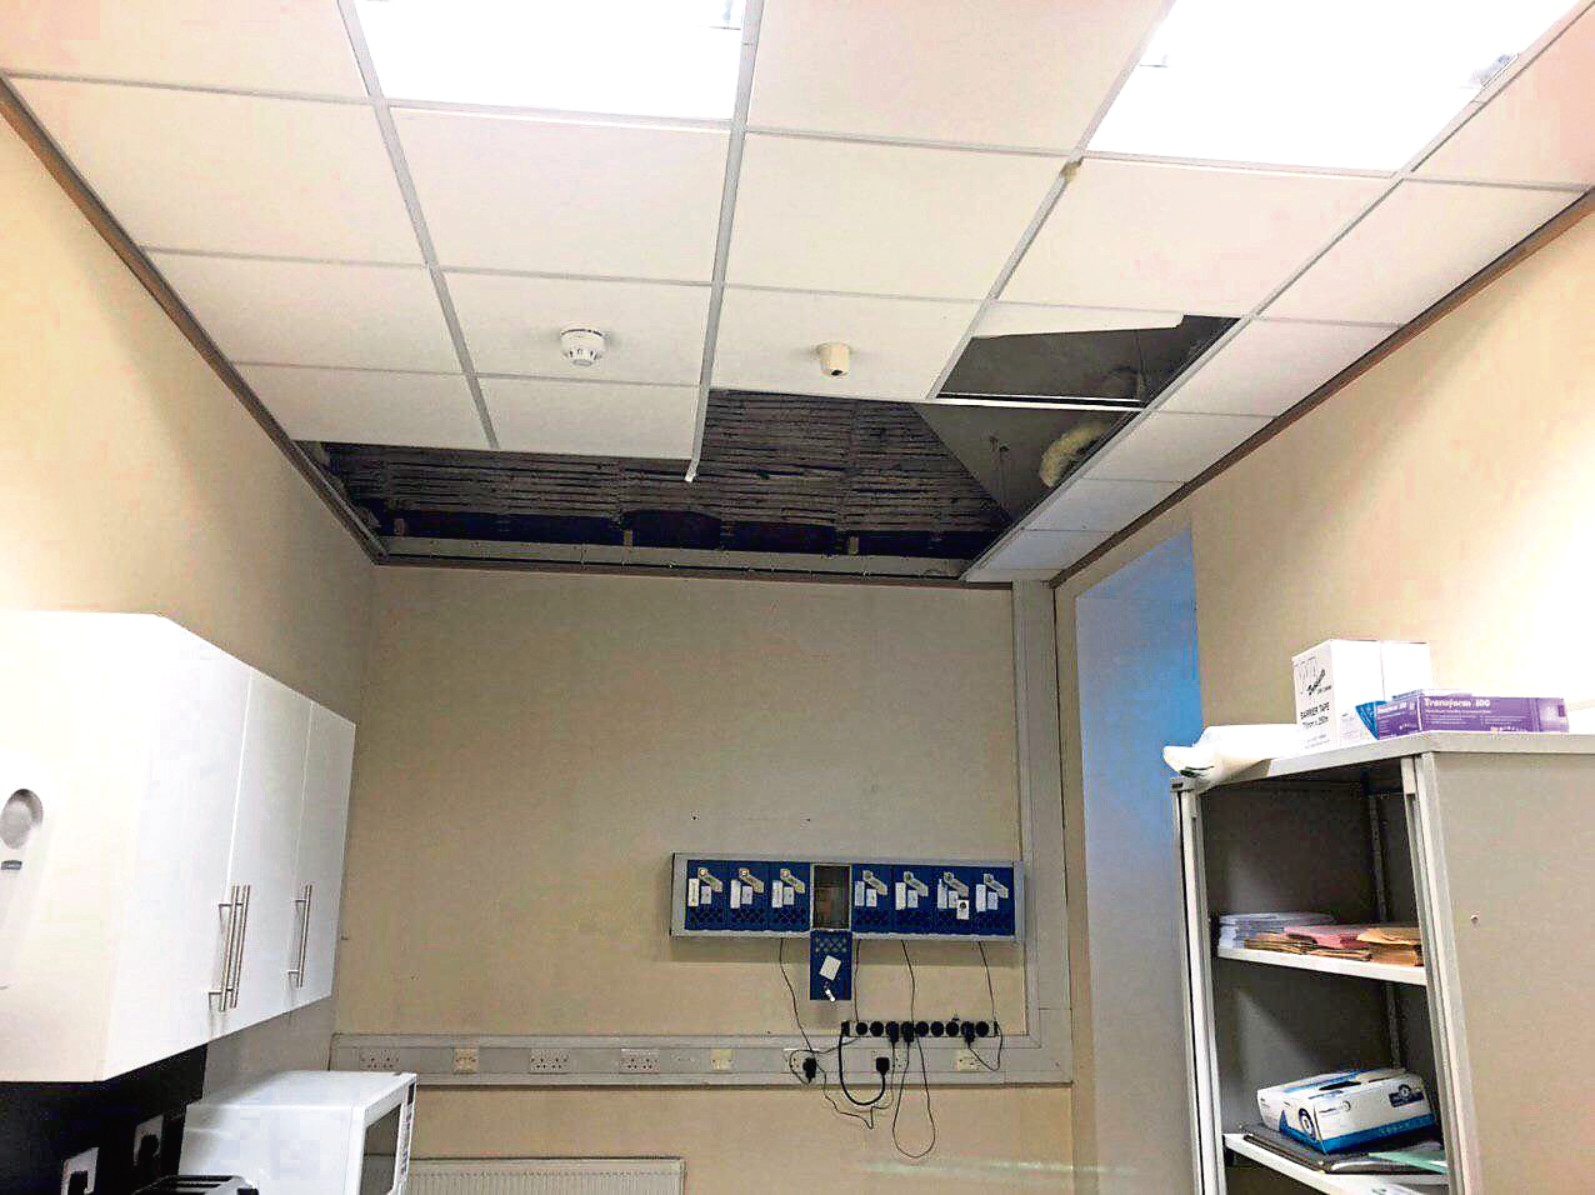 The collapsed ceiling at Broughty Ferry police station.